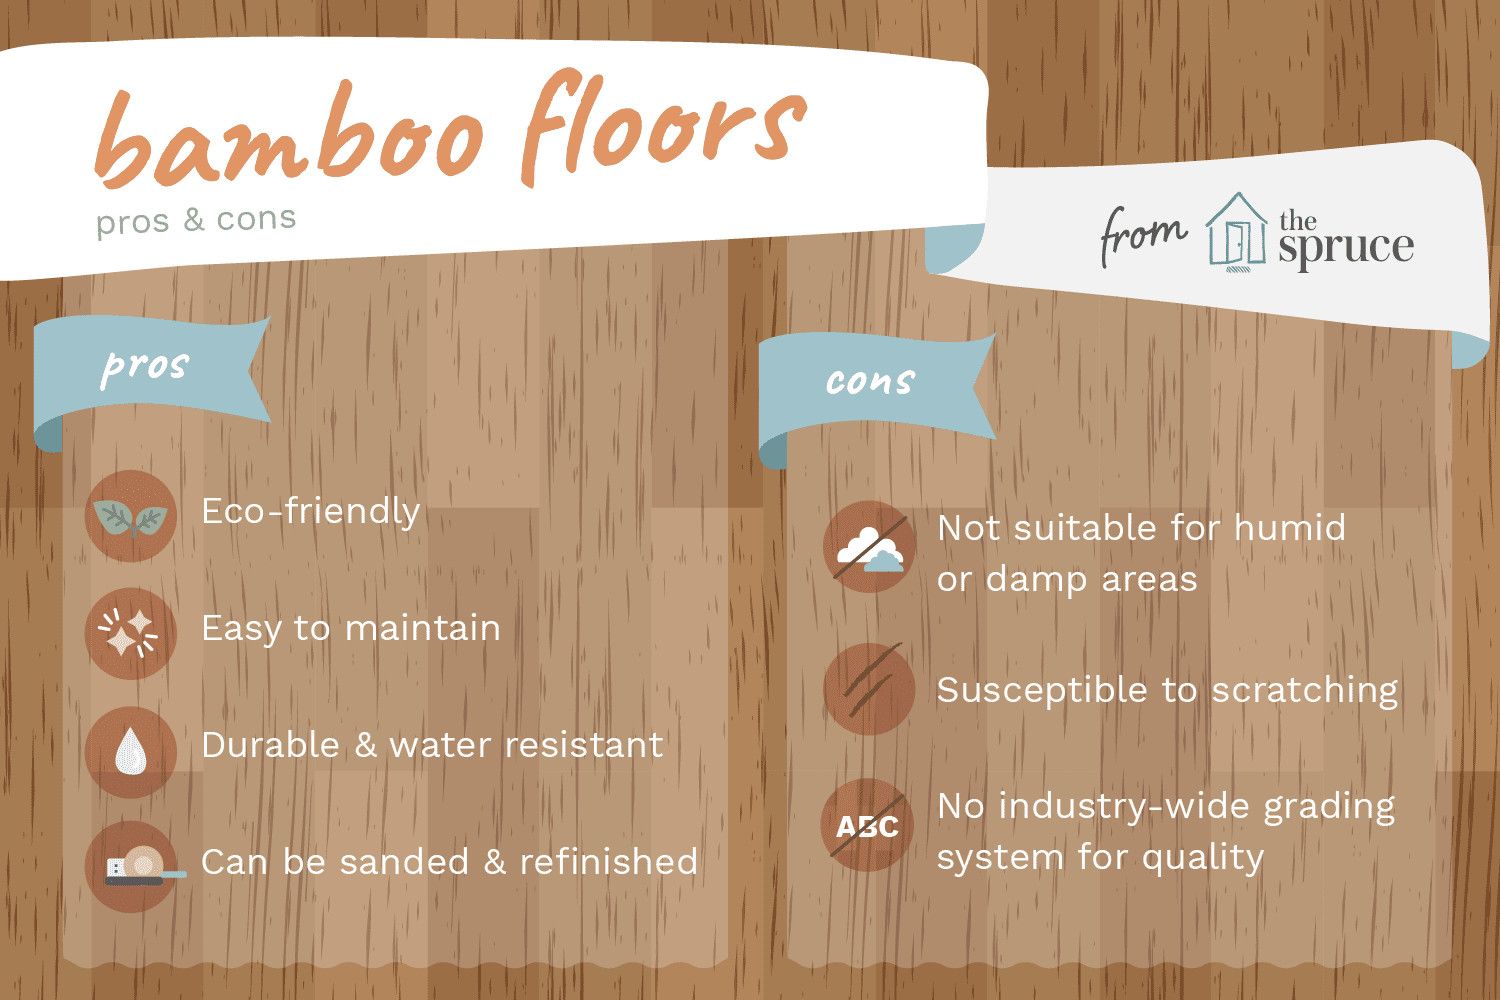 13 Ideal Dark Bamboo Hardwood Floors 2021 free download dark bamboo hardwood floors of the advantages and disadvantages of bamboo flooring intended for benefits and drawbacks of bamboo floors 1314694 v3 5b102fccff1b780036c0a4fa